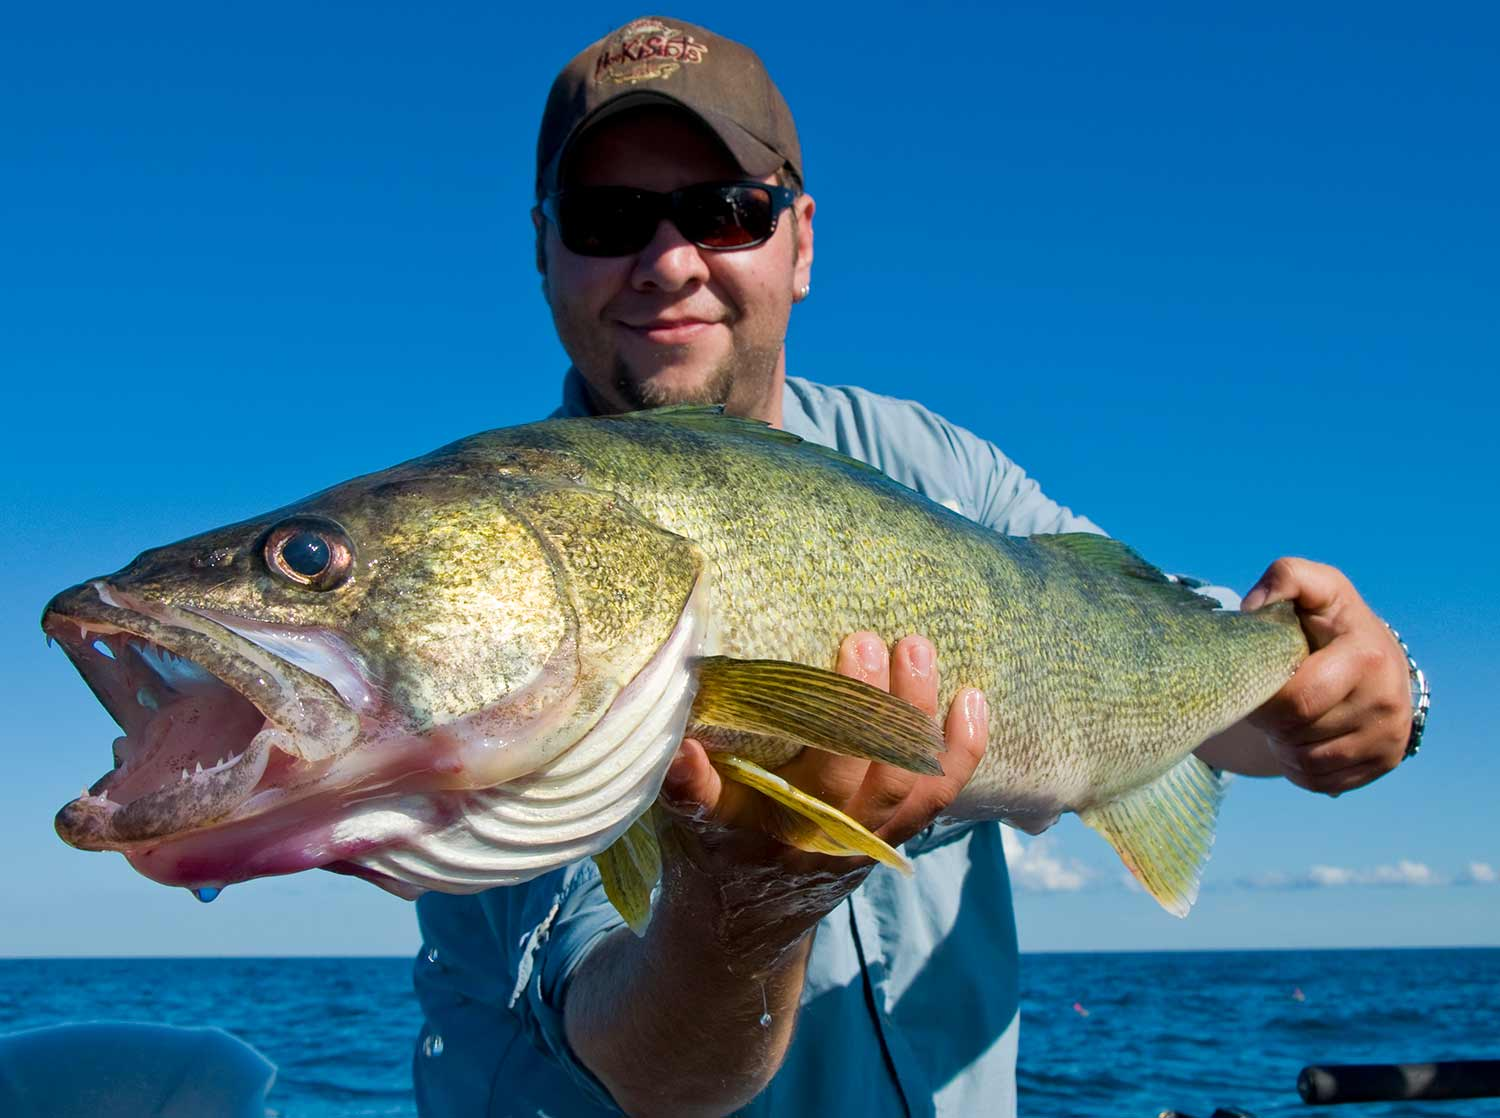 The 15 Best Walleye Jigs and Lures (& How to Use Them)